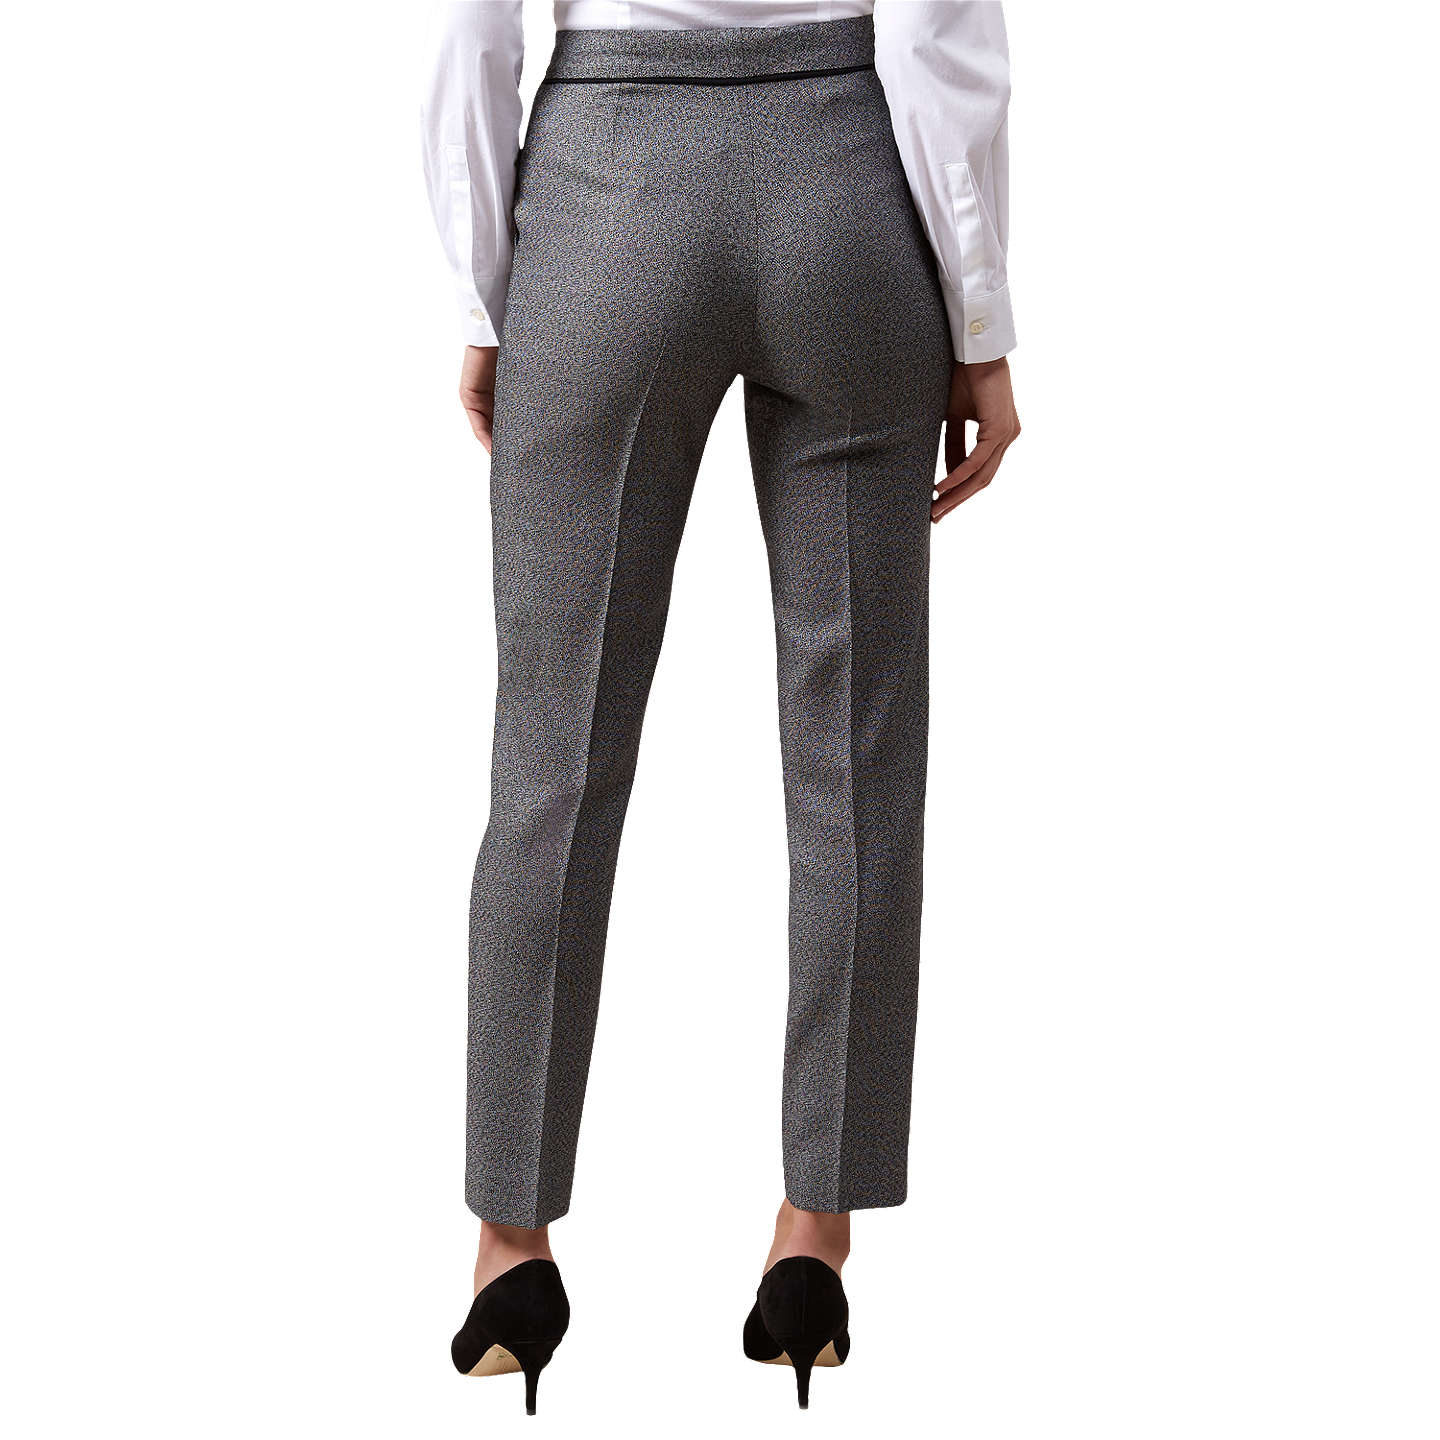 BuyHobbs Marlene Trousers, Black Ivory, 10 Online at johnlewis.com